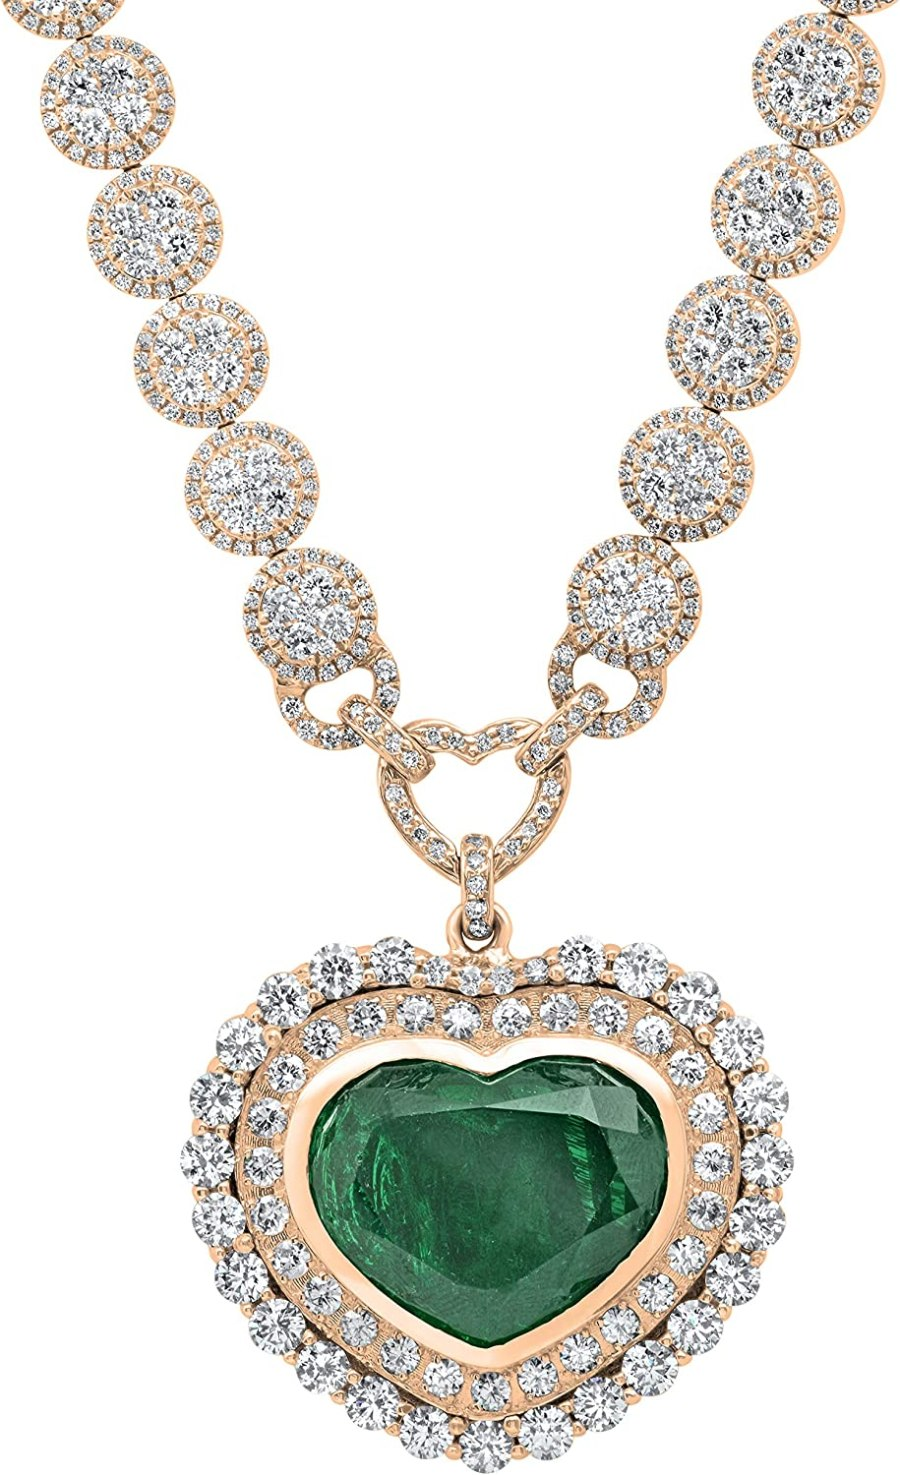 Dazzlingrock Collection Heart Colombian Emerald & Round White Diamond Ladies Halo Style Necklace, White Diamond G Color; VS Clarity; Available in 10K/14K/18K Gold